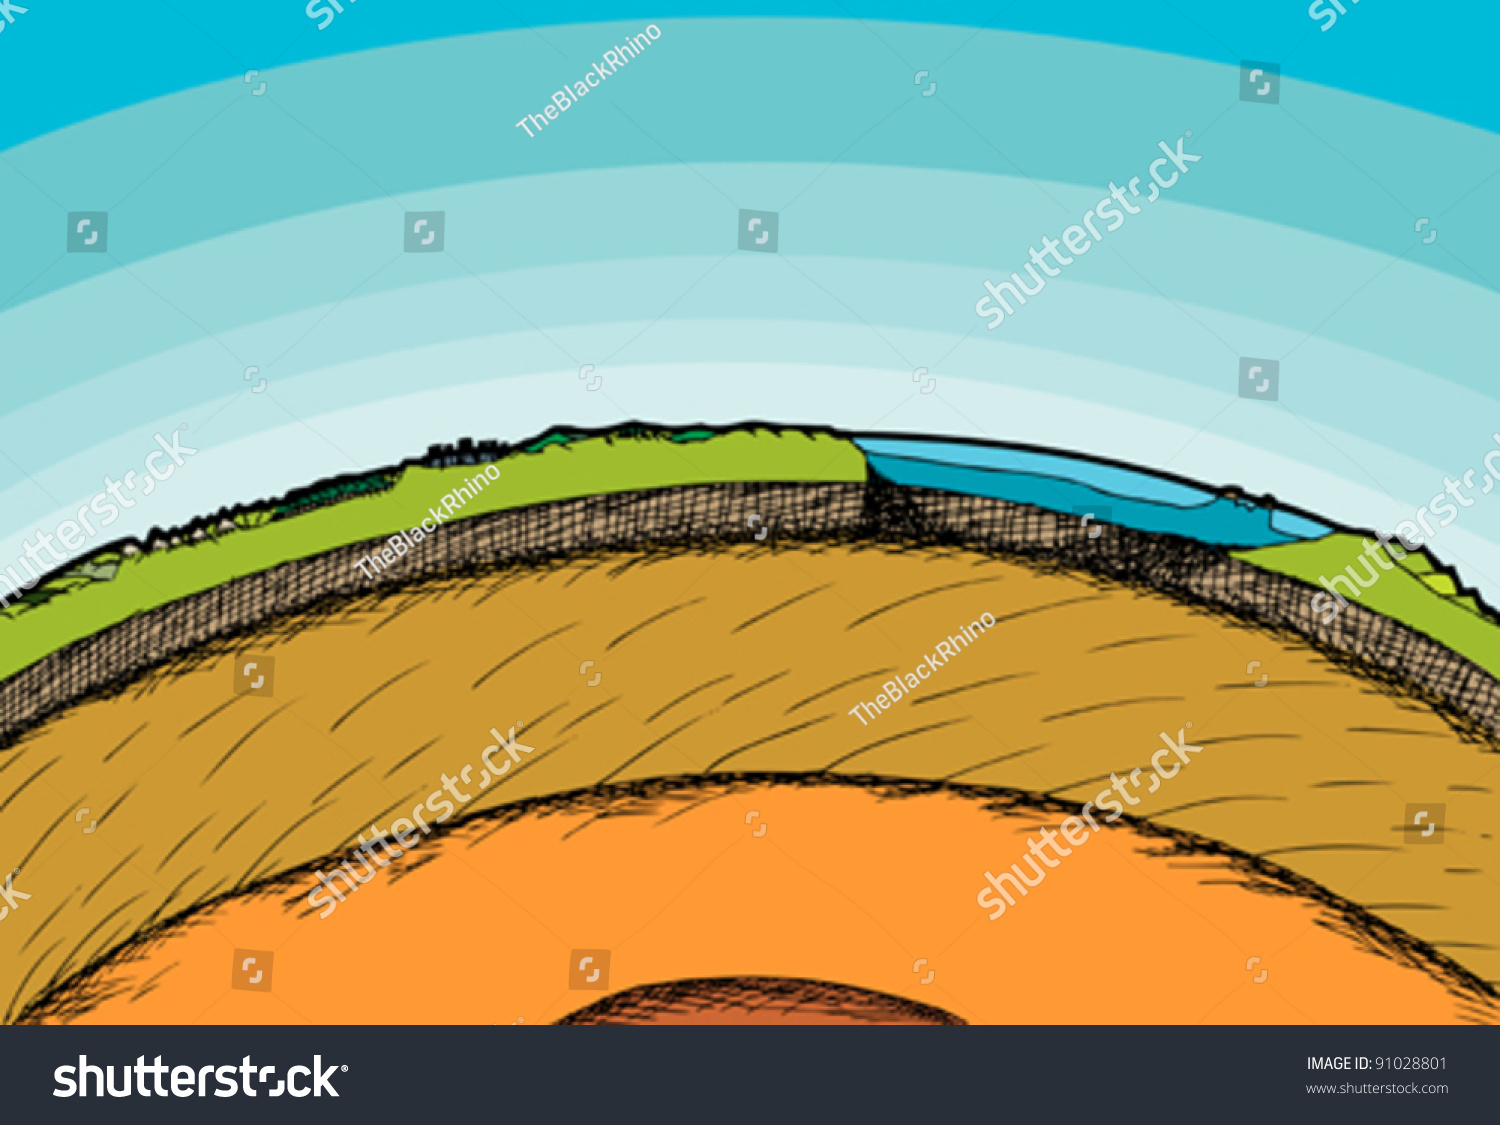 Crosssection Illustration Planet Earth Atmosphere Stock